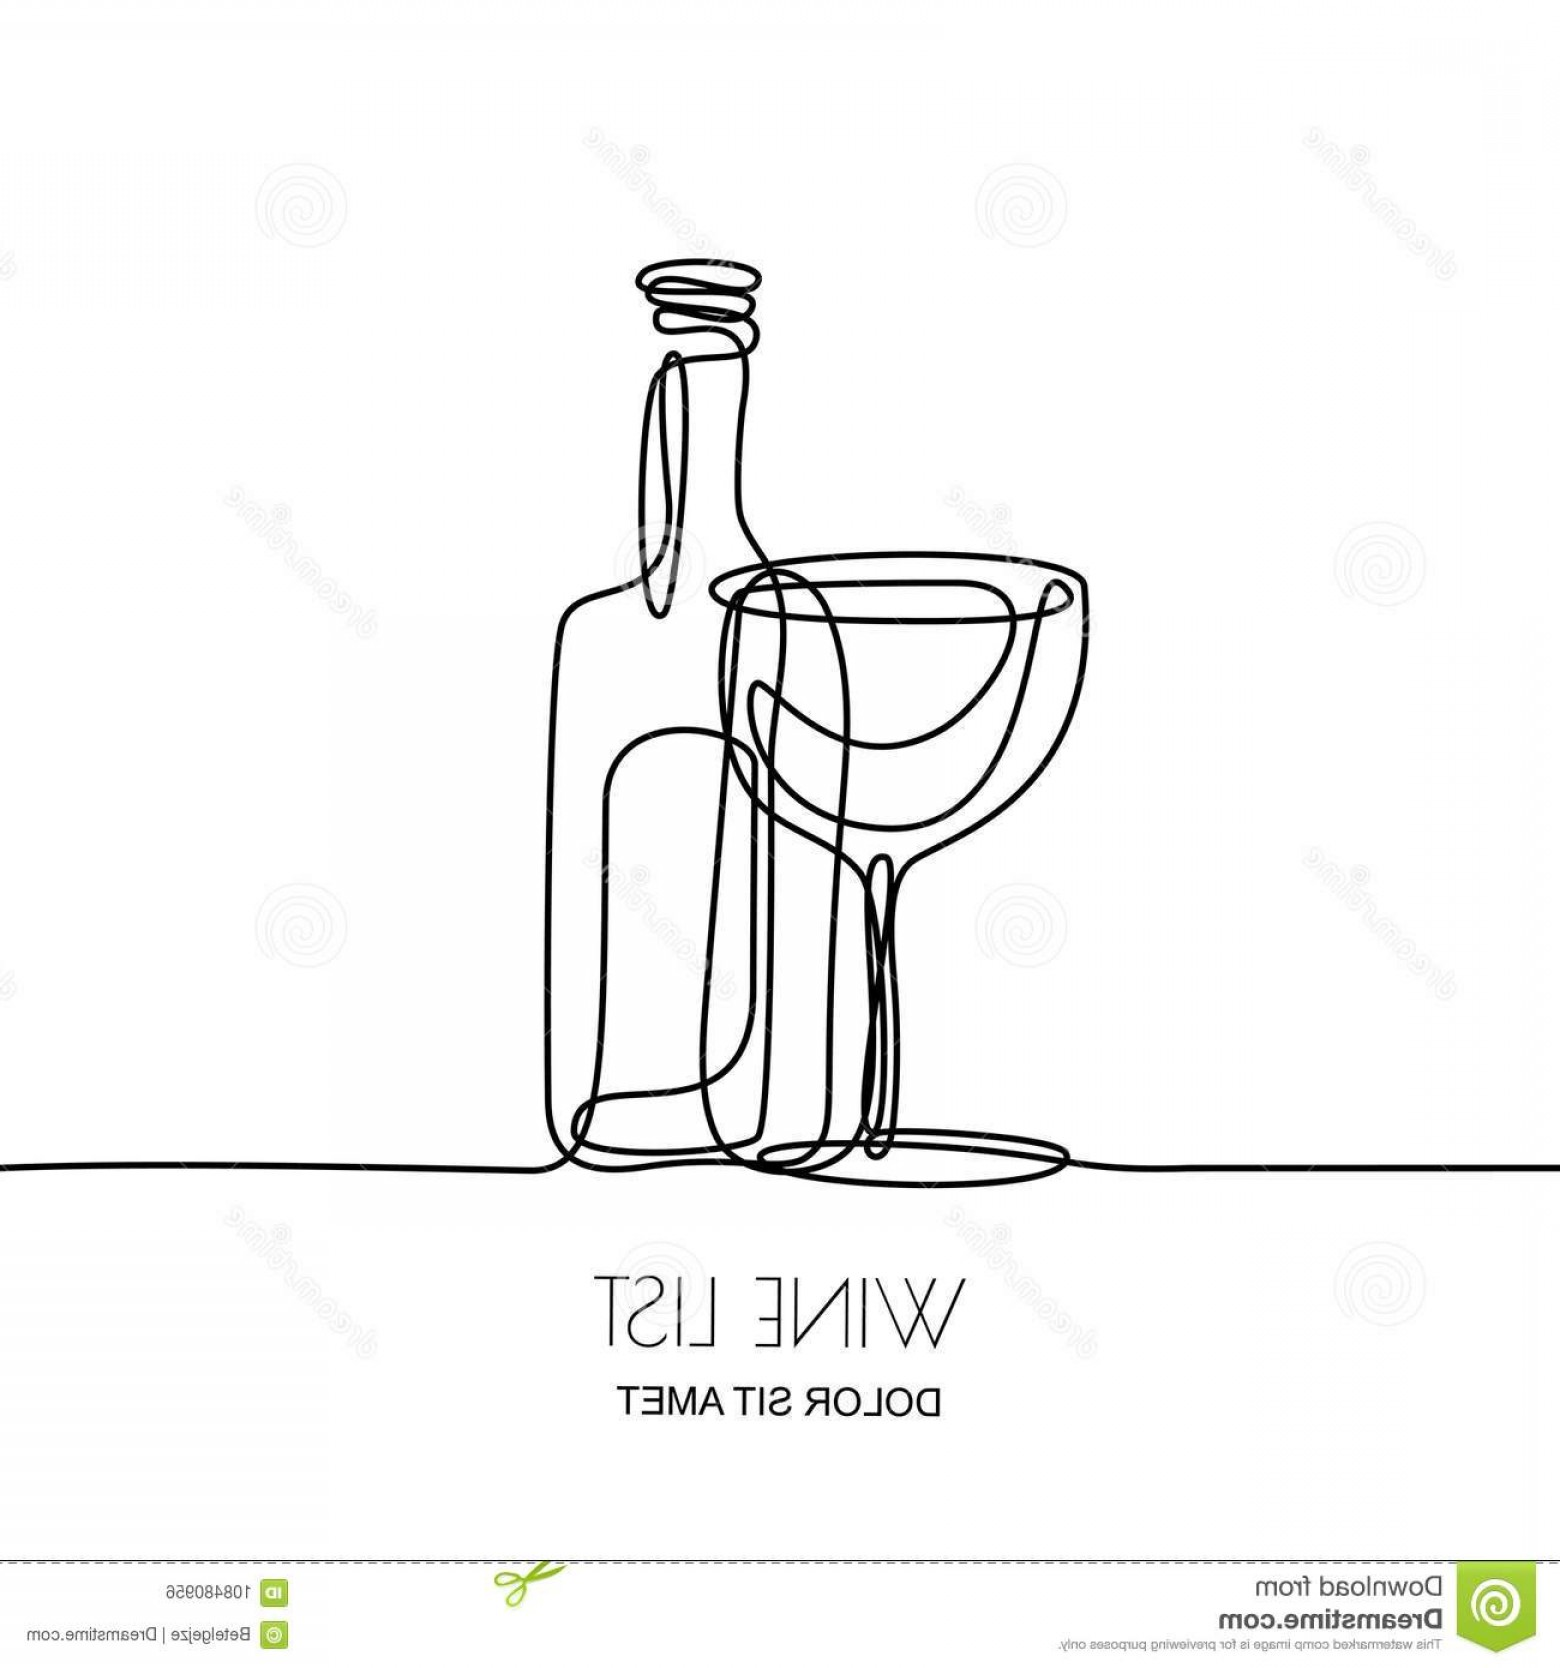 Wine Bottle Vector Line Art: Continuous Line Drawing Vector Linear Black Illustration Wine Bottle Glass Isolated White Background Concept Design Image